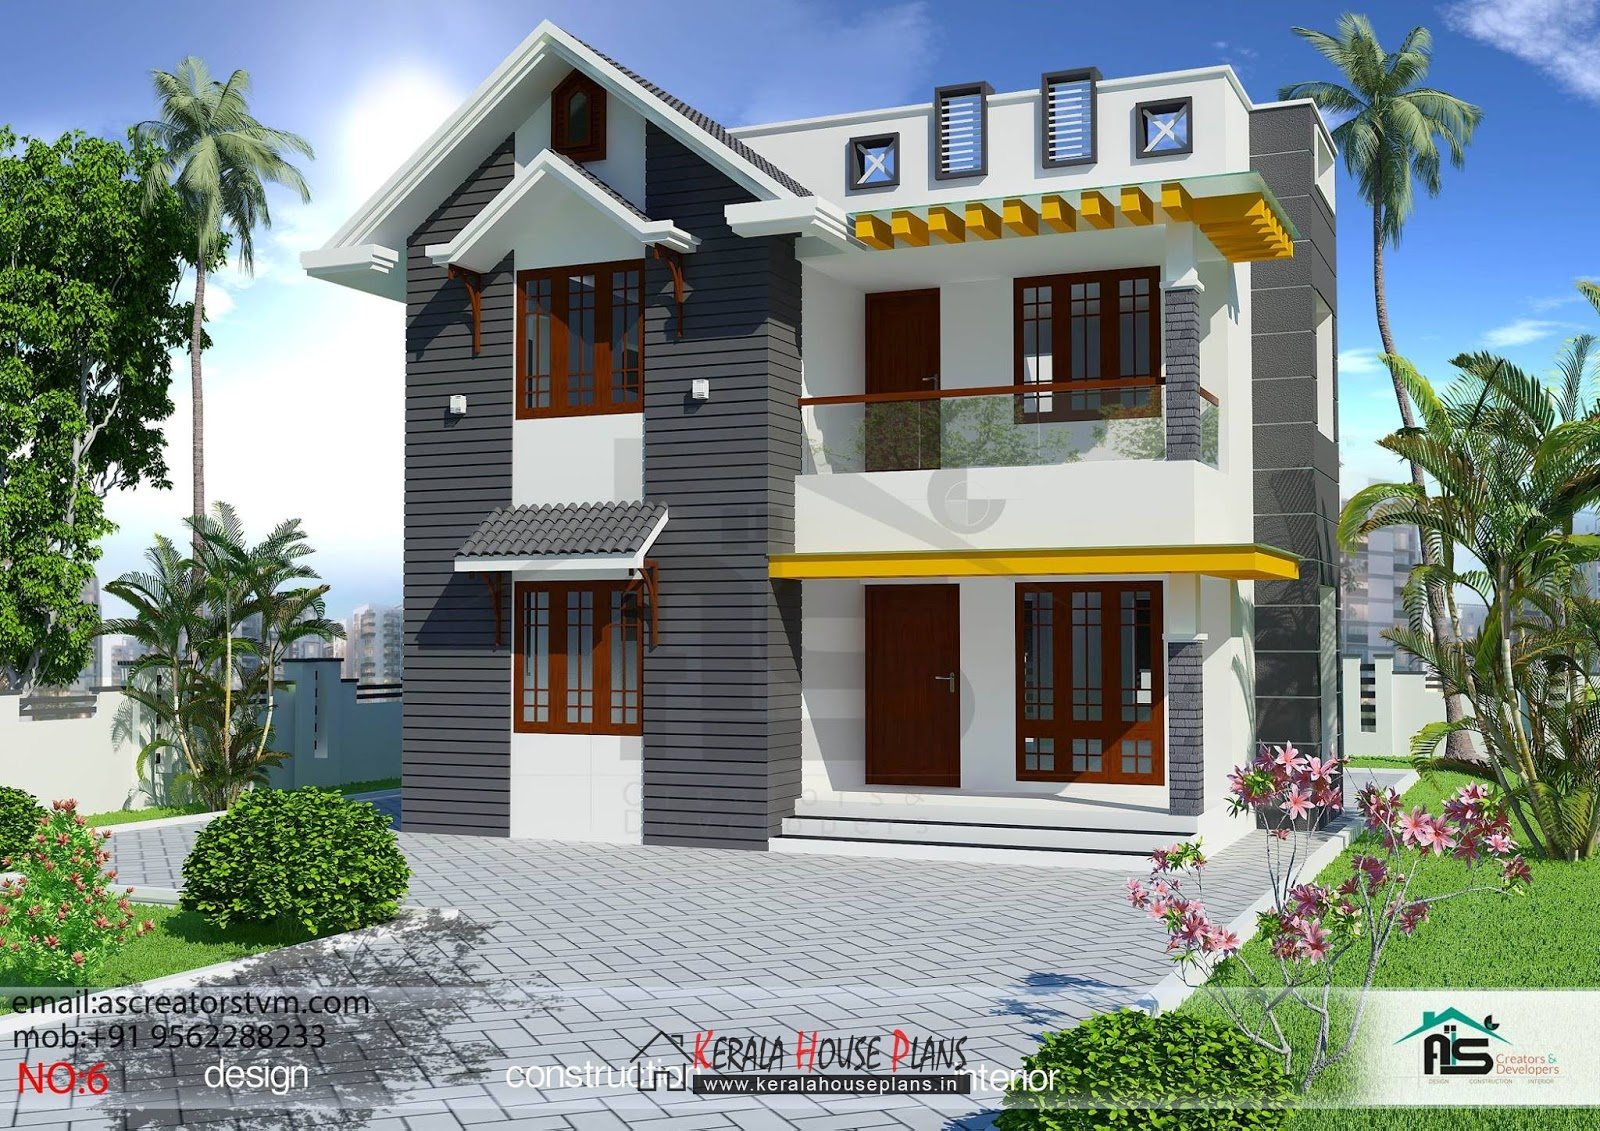 3 bedroom house plans in kerala double floor - 15+ 3 Room House Low Cost Small House Design In Nepal PNG